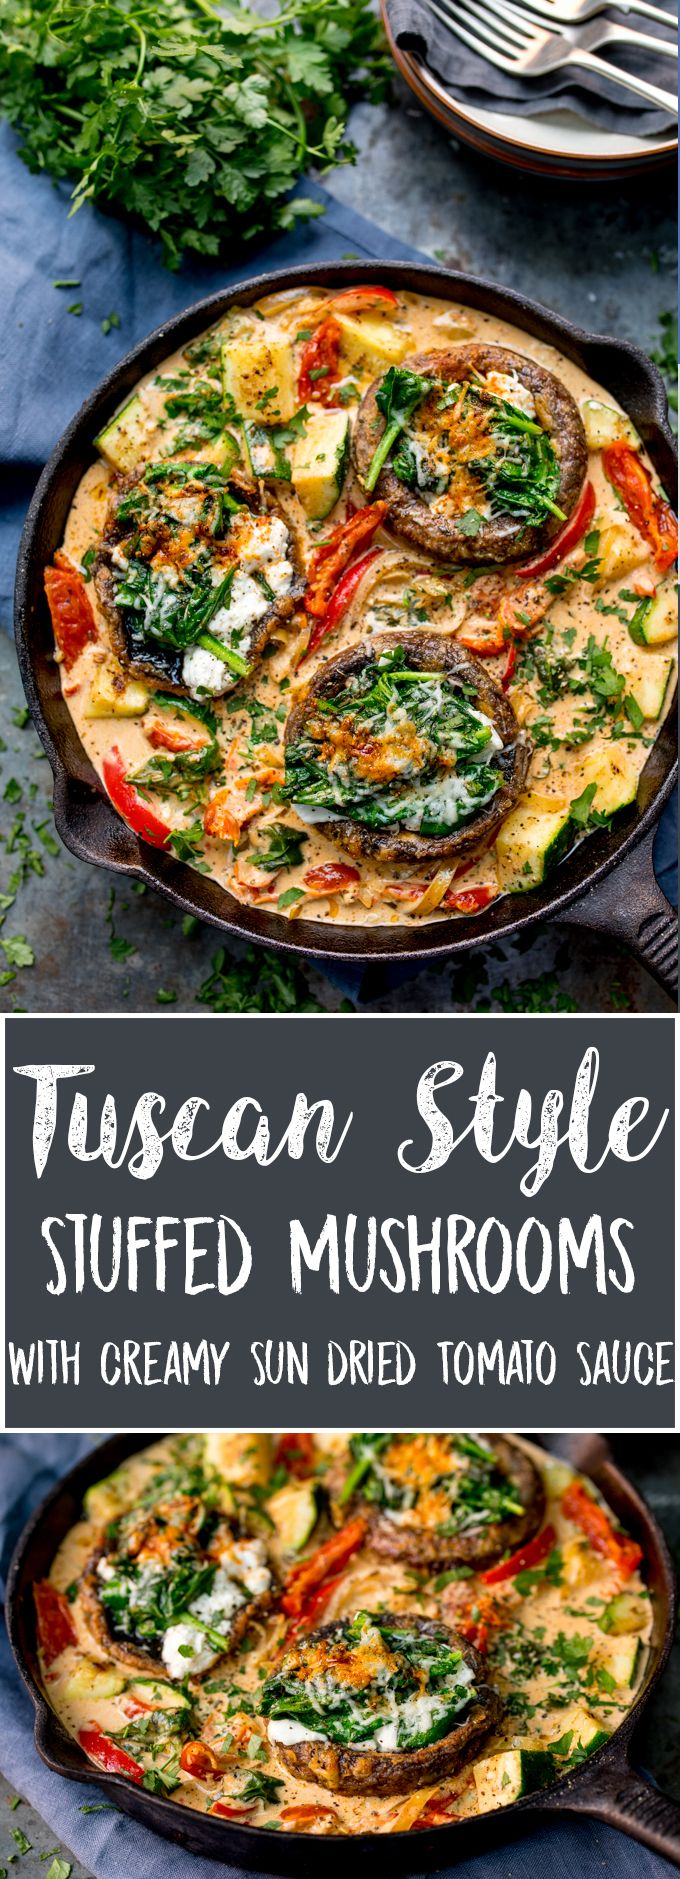 Tuscan Style Stuffed Mushrooms in Creamy Sun Dried Tomato Sauce makes a great veggie dish, packed with flavour! Gluten free too! #glutenfreevegetarianfood #glutenfreedinner #tuscanmushrooms #mushrooms KitchenSanctuary.com via @kitchensanc2ary